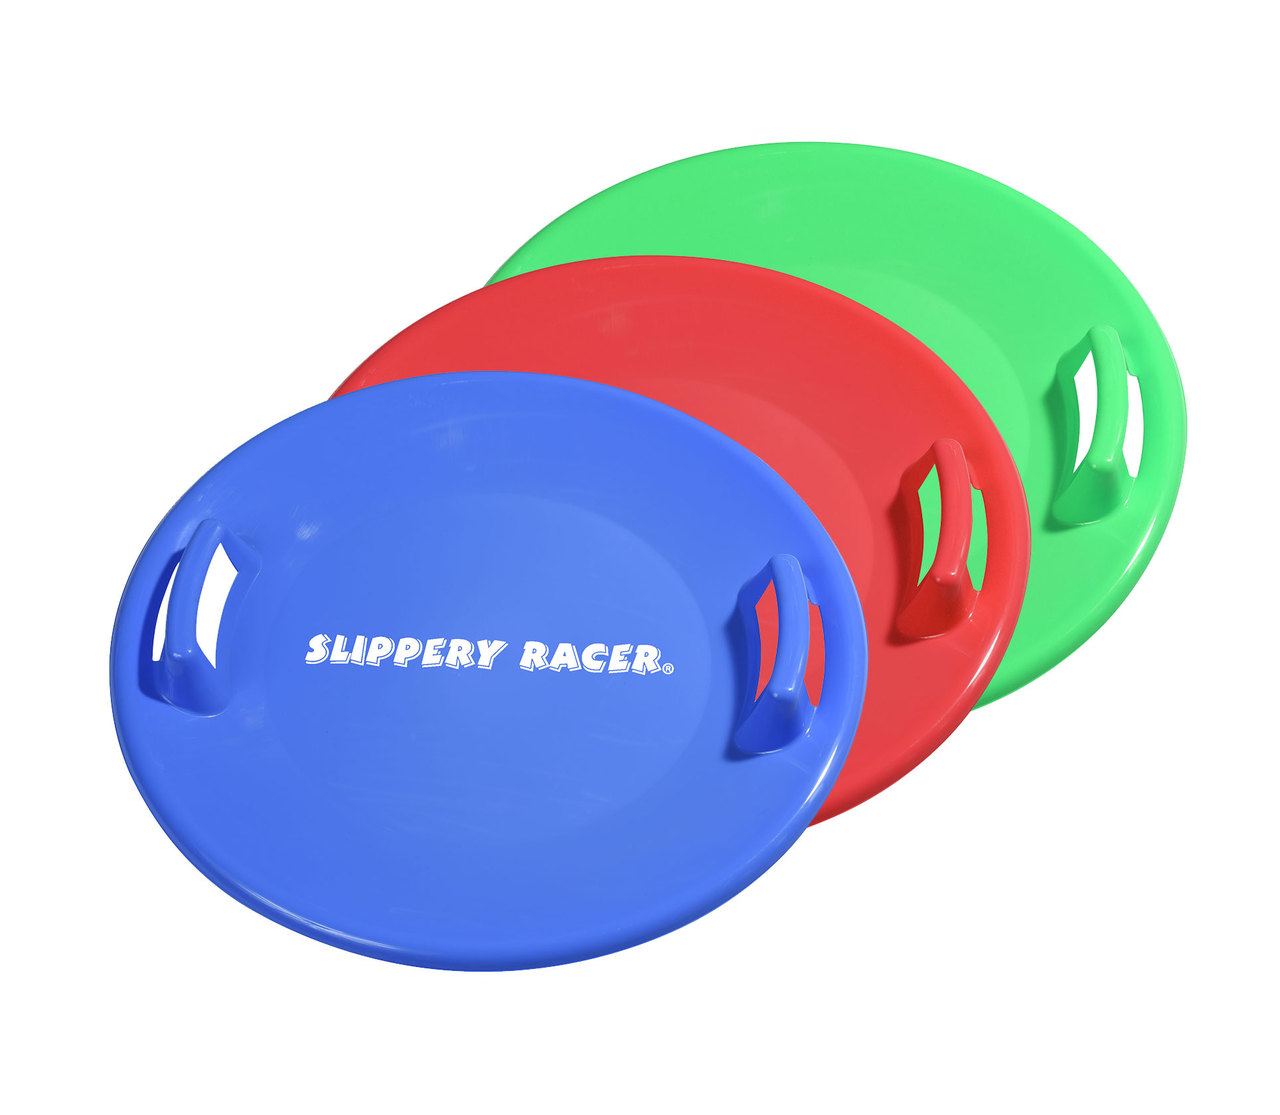 Slippery Racer Downhill Pro Disc Saucer Sled 3 PACK by Slippery Racer